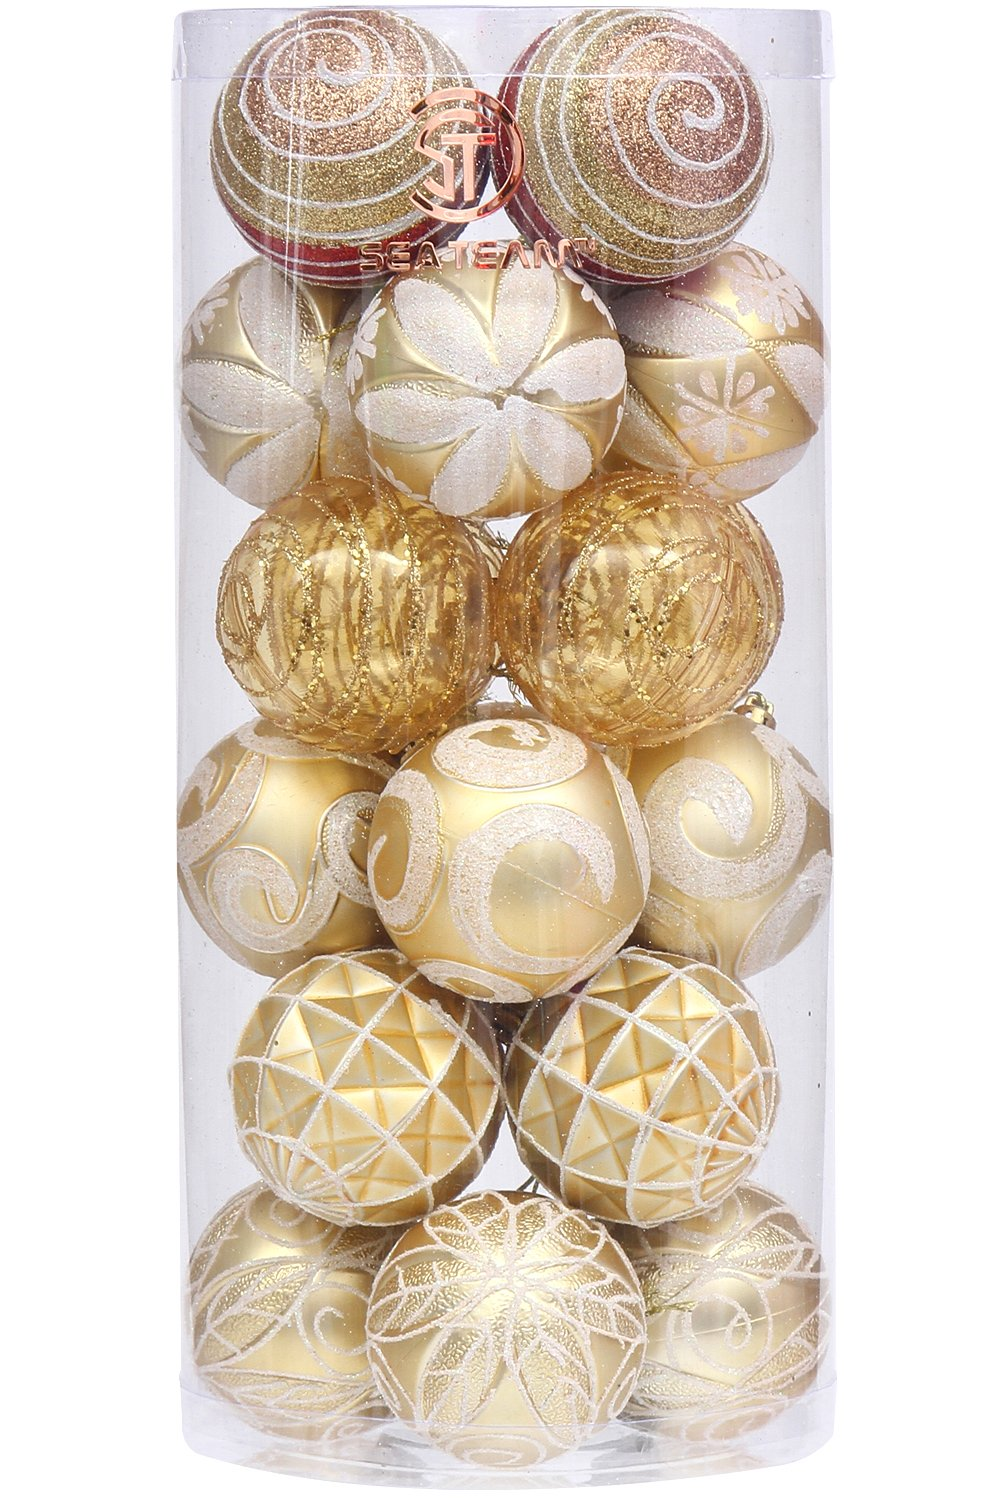 Sea Team 60mm/2.36'' Decorative Shatterproof Painting & Glitering Designs Christmas Ornaments Christmas Balls Set with Embossed Finish Surface, 24-Pack, Gold